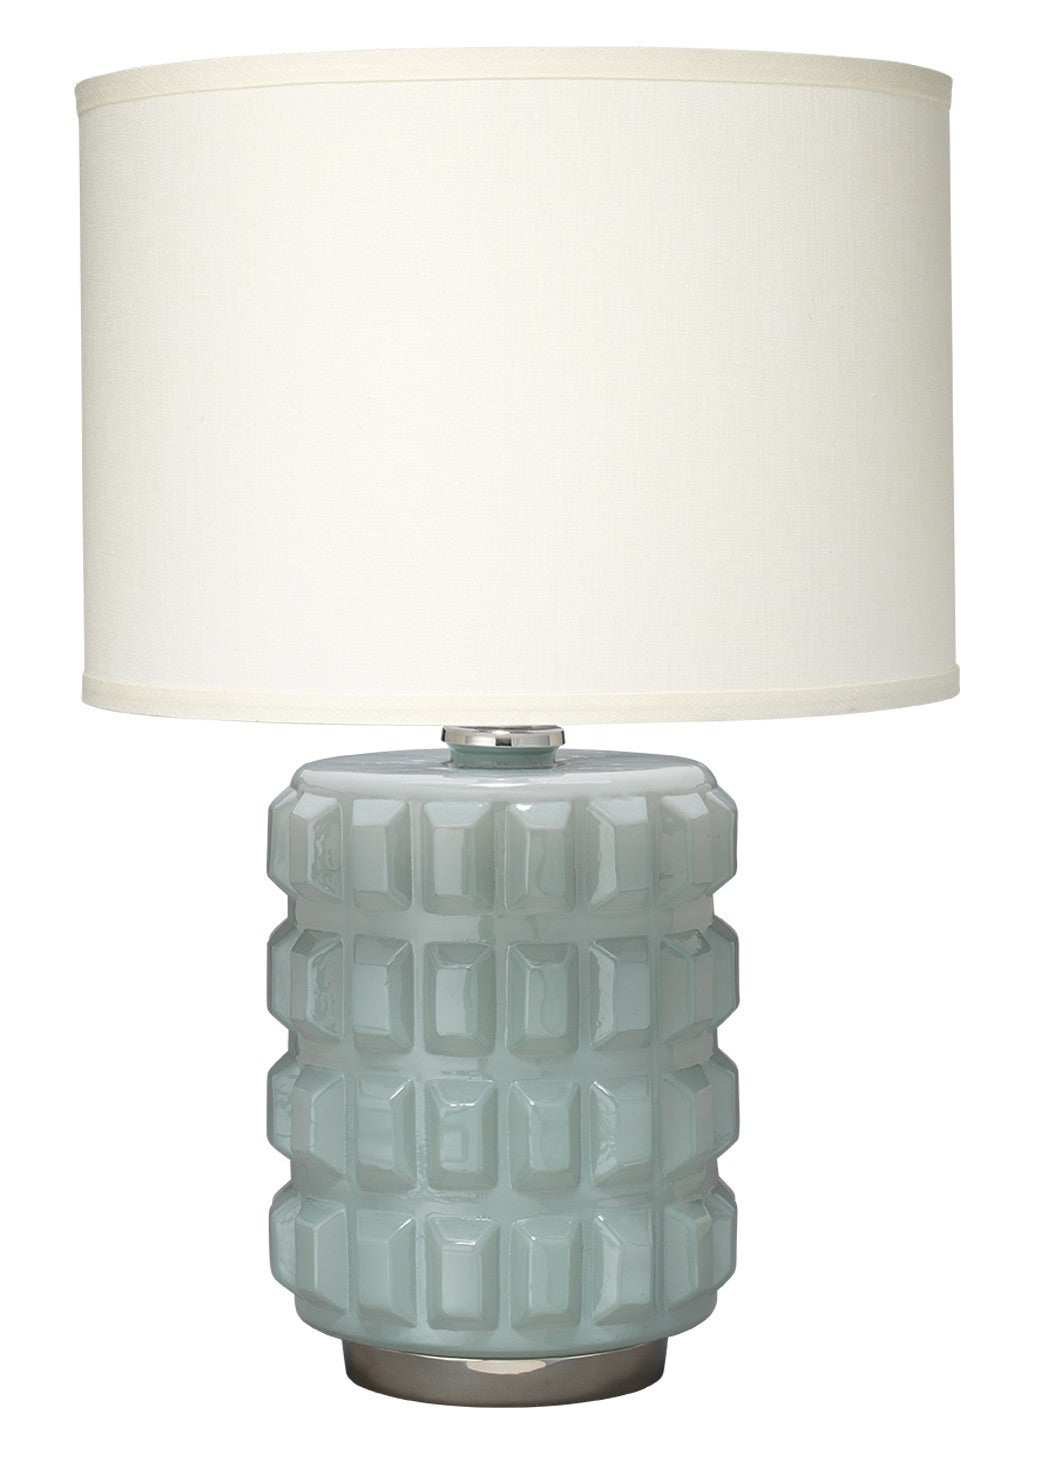 Madison table lamp jamie young luxe home philadelphia madison table lamp jamie young geotapseo Gallery